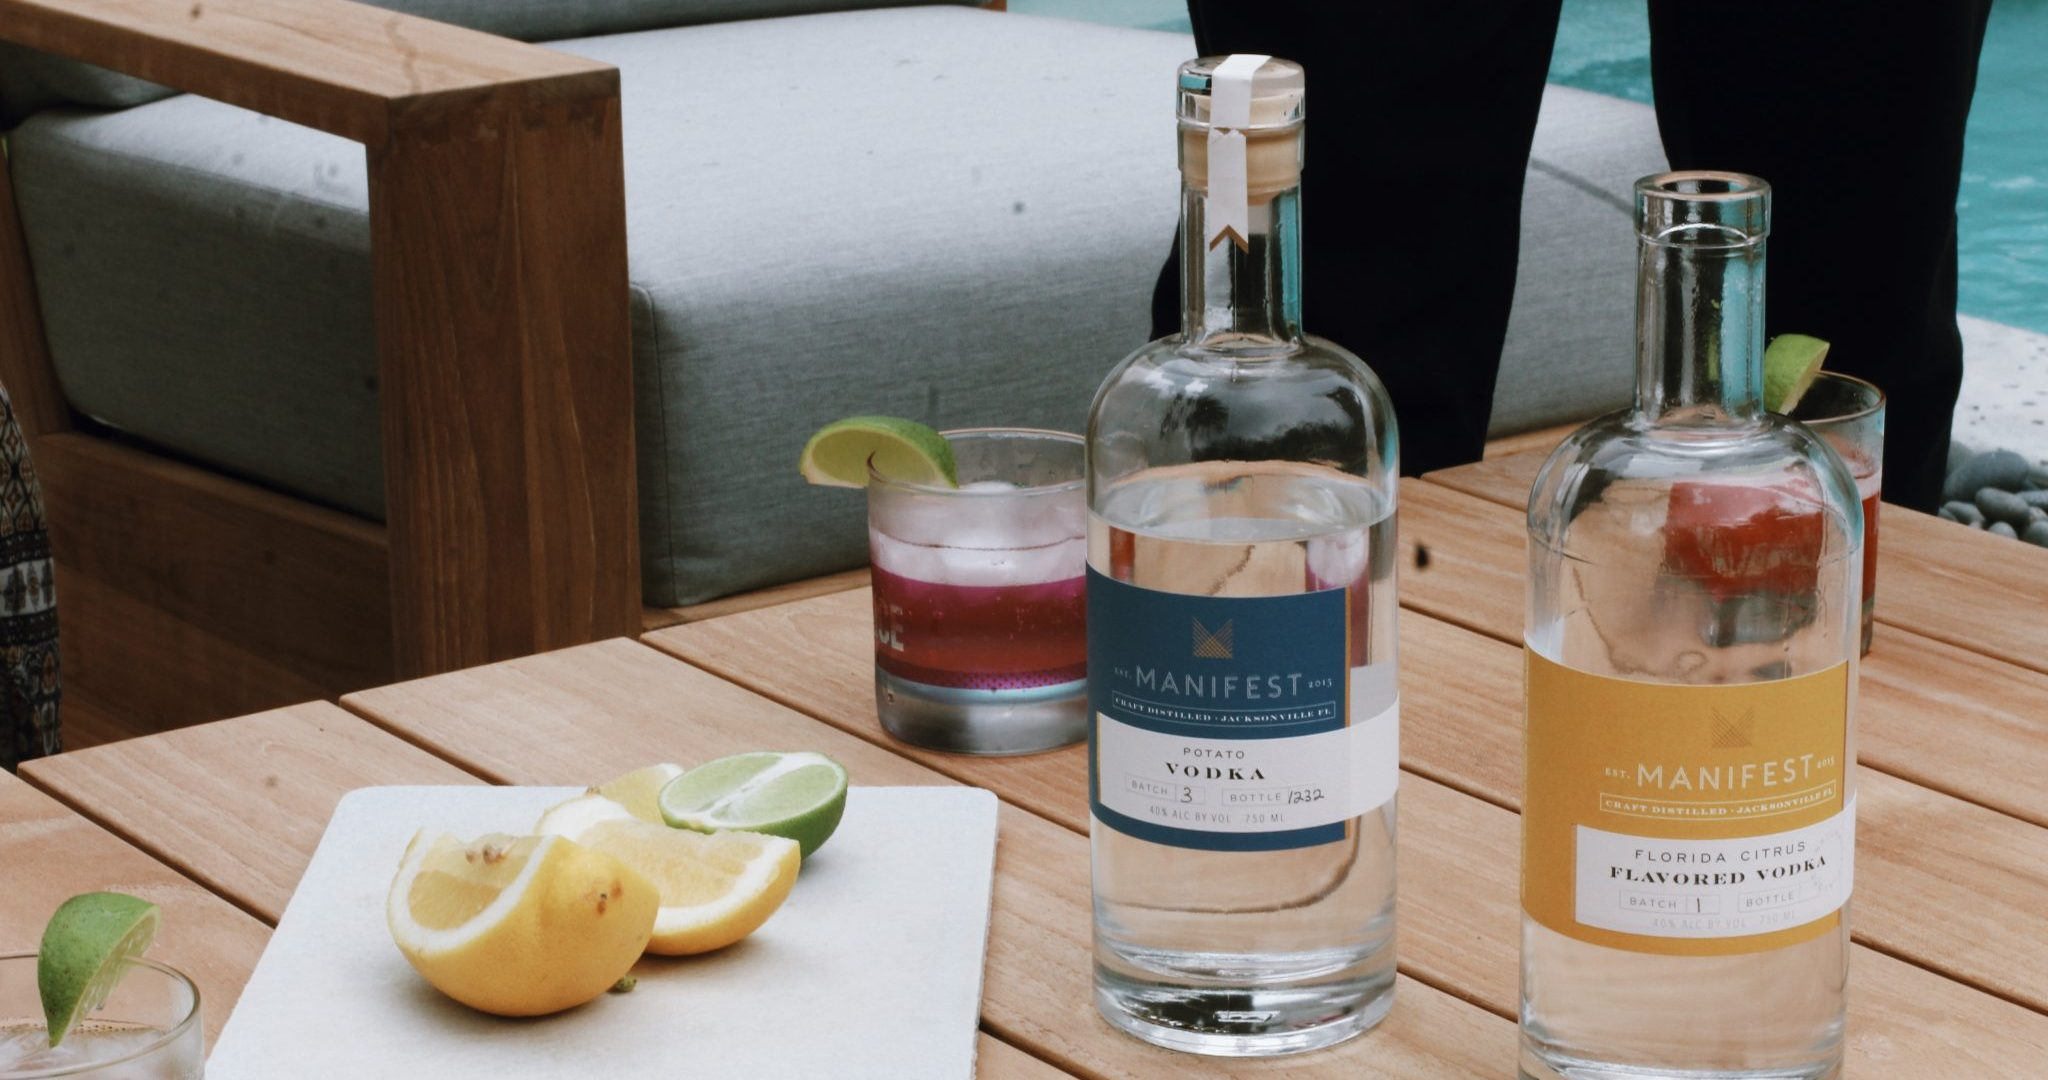 Manifest Distilling Products on a Patio